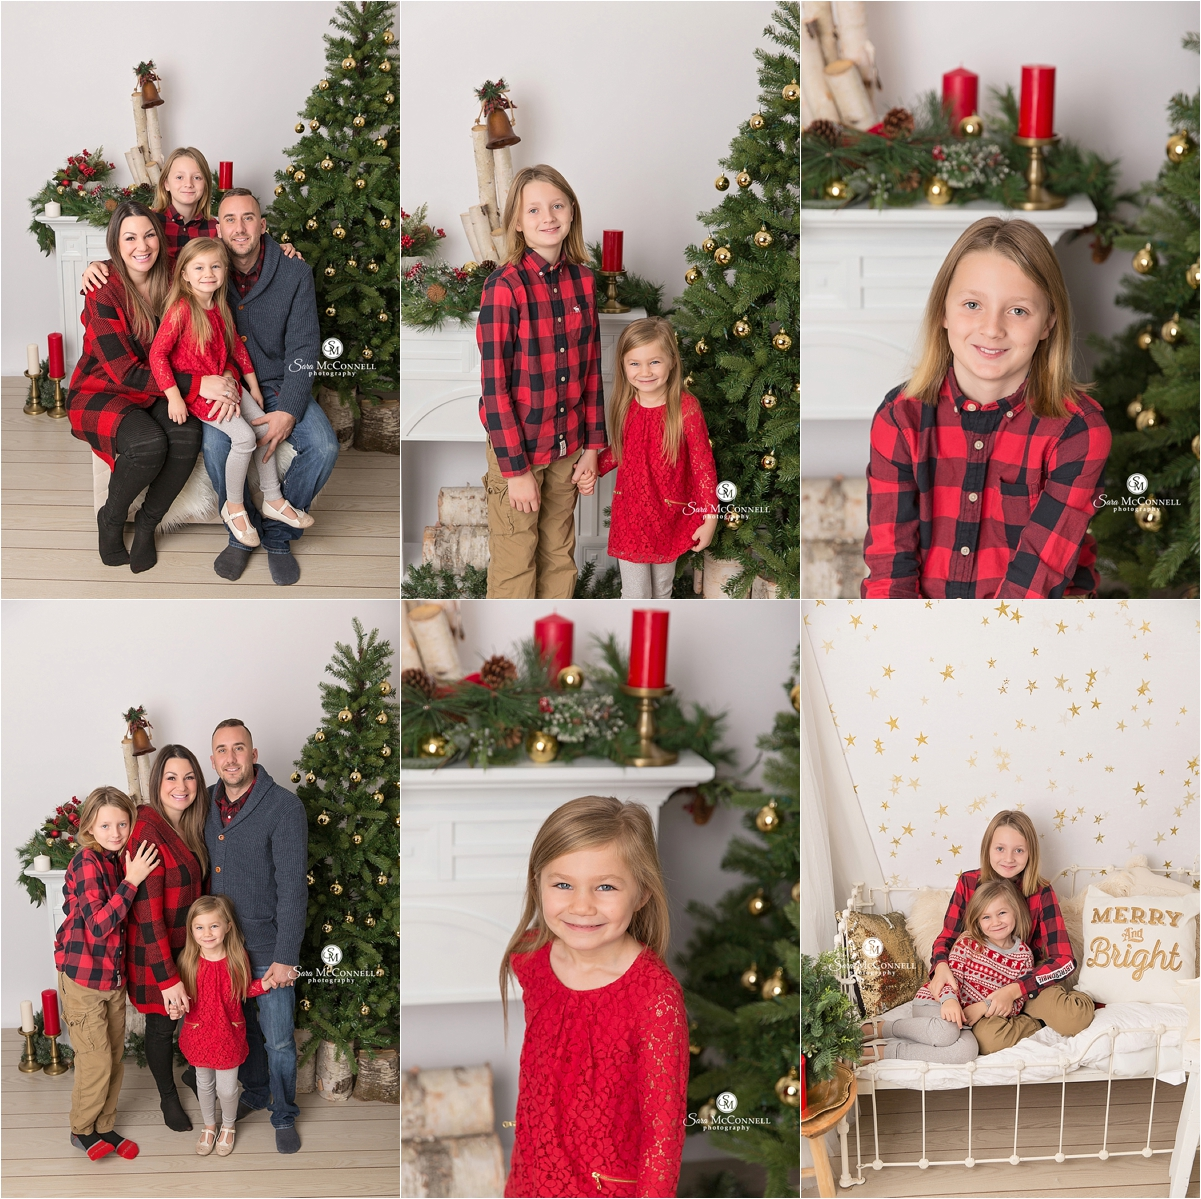 Holiday photos in studio by Sara McConnell Photography